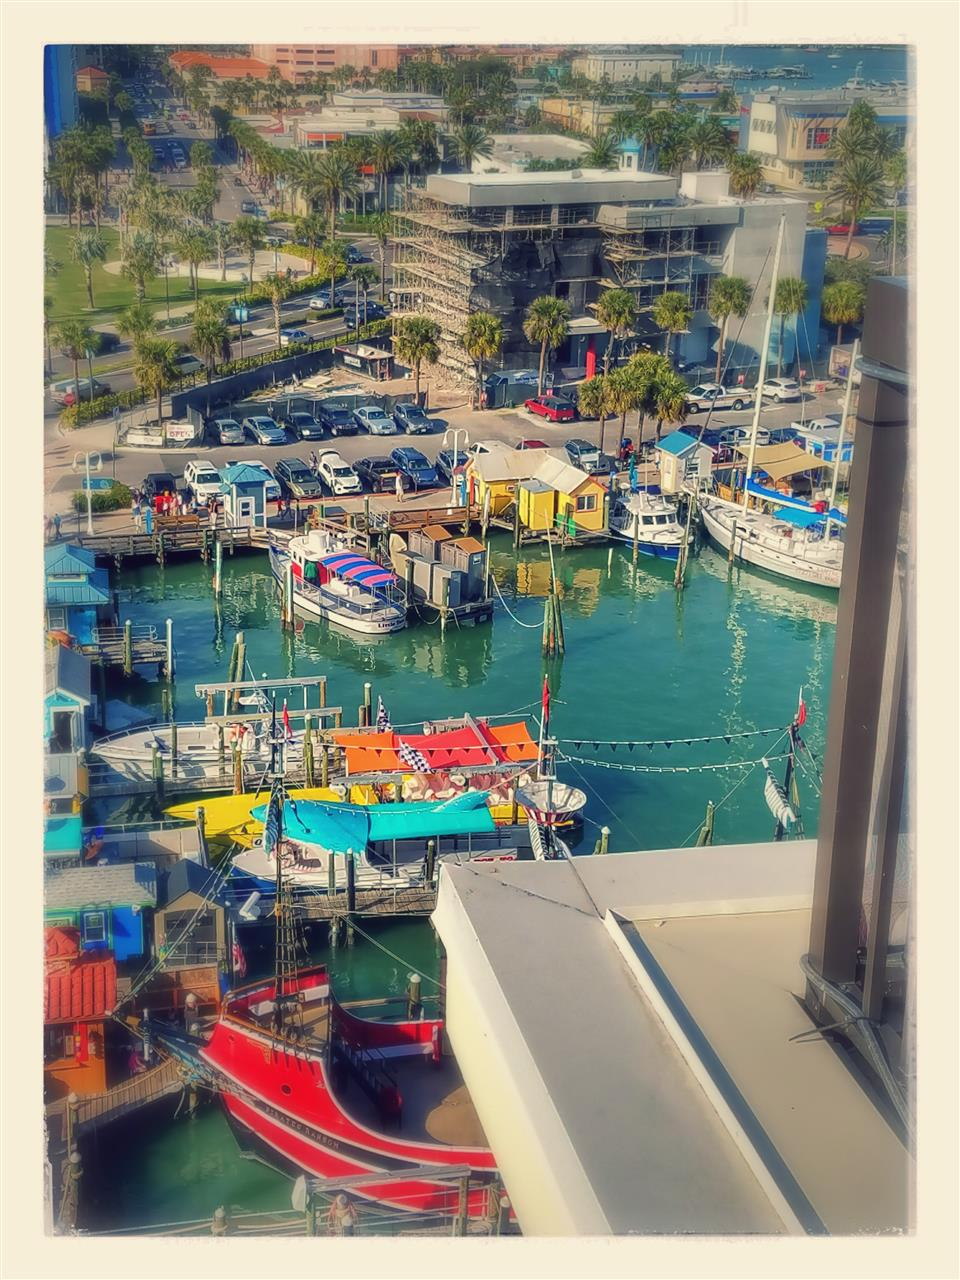 Colorful Clearwater Beach Marina, Florida